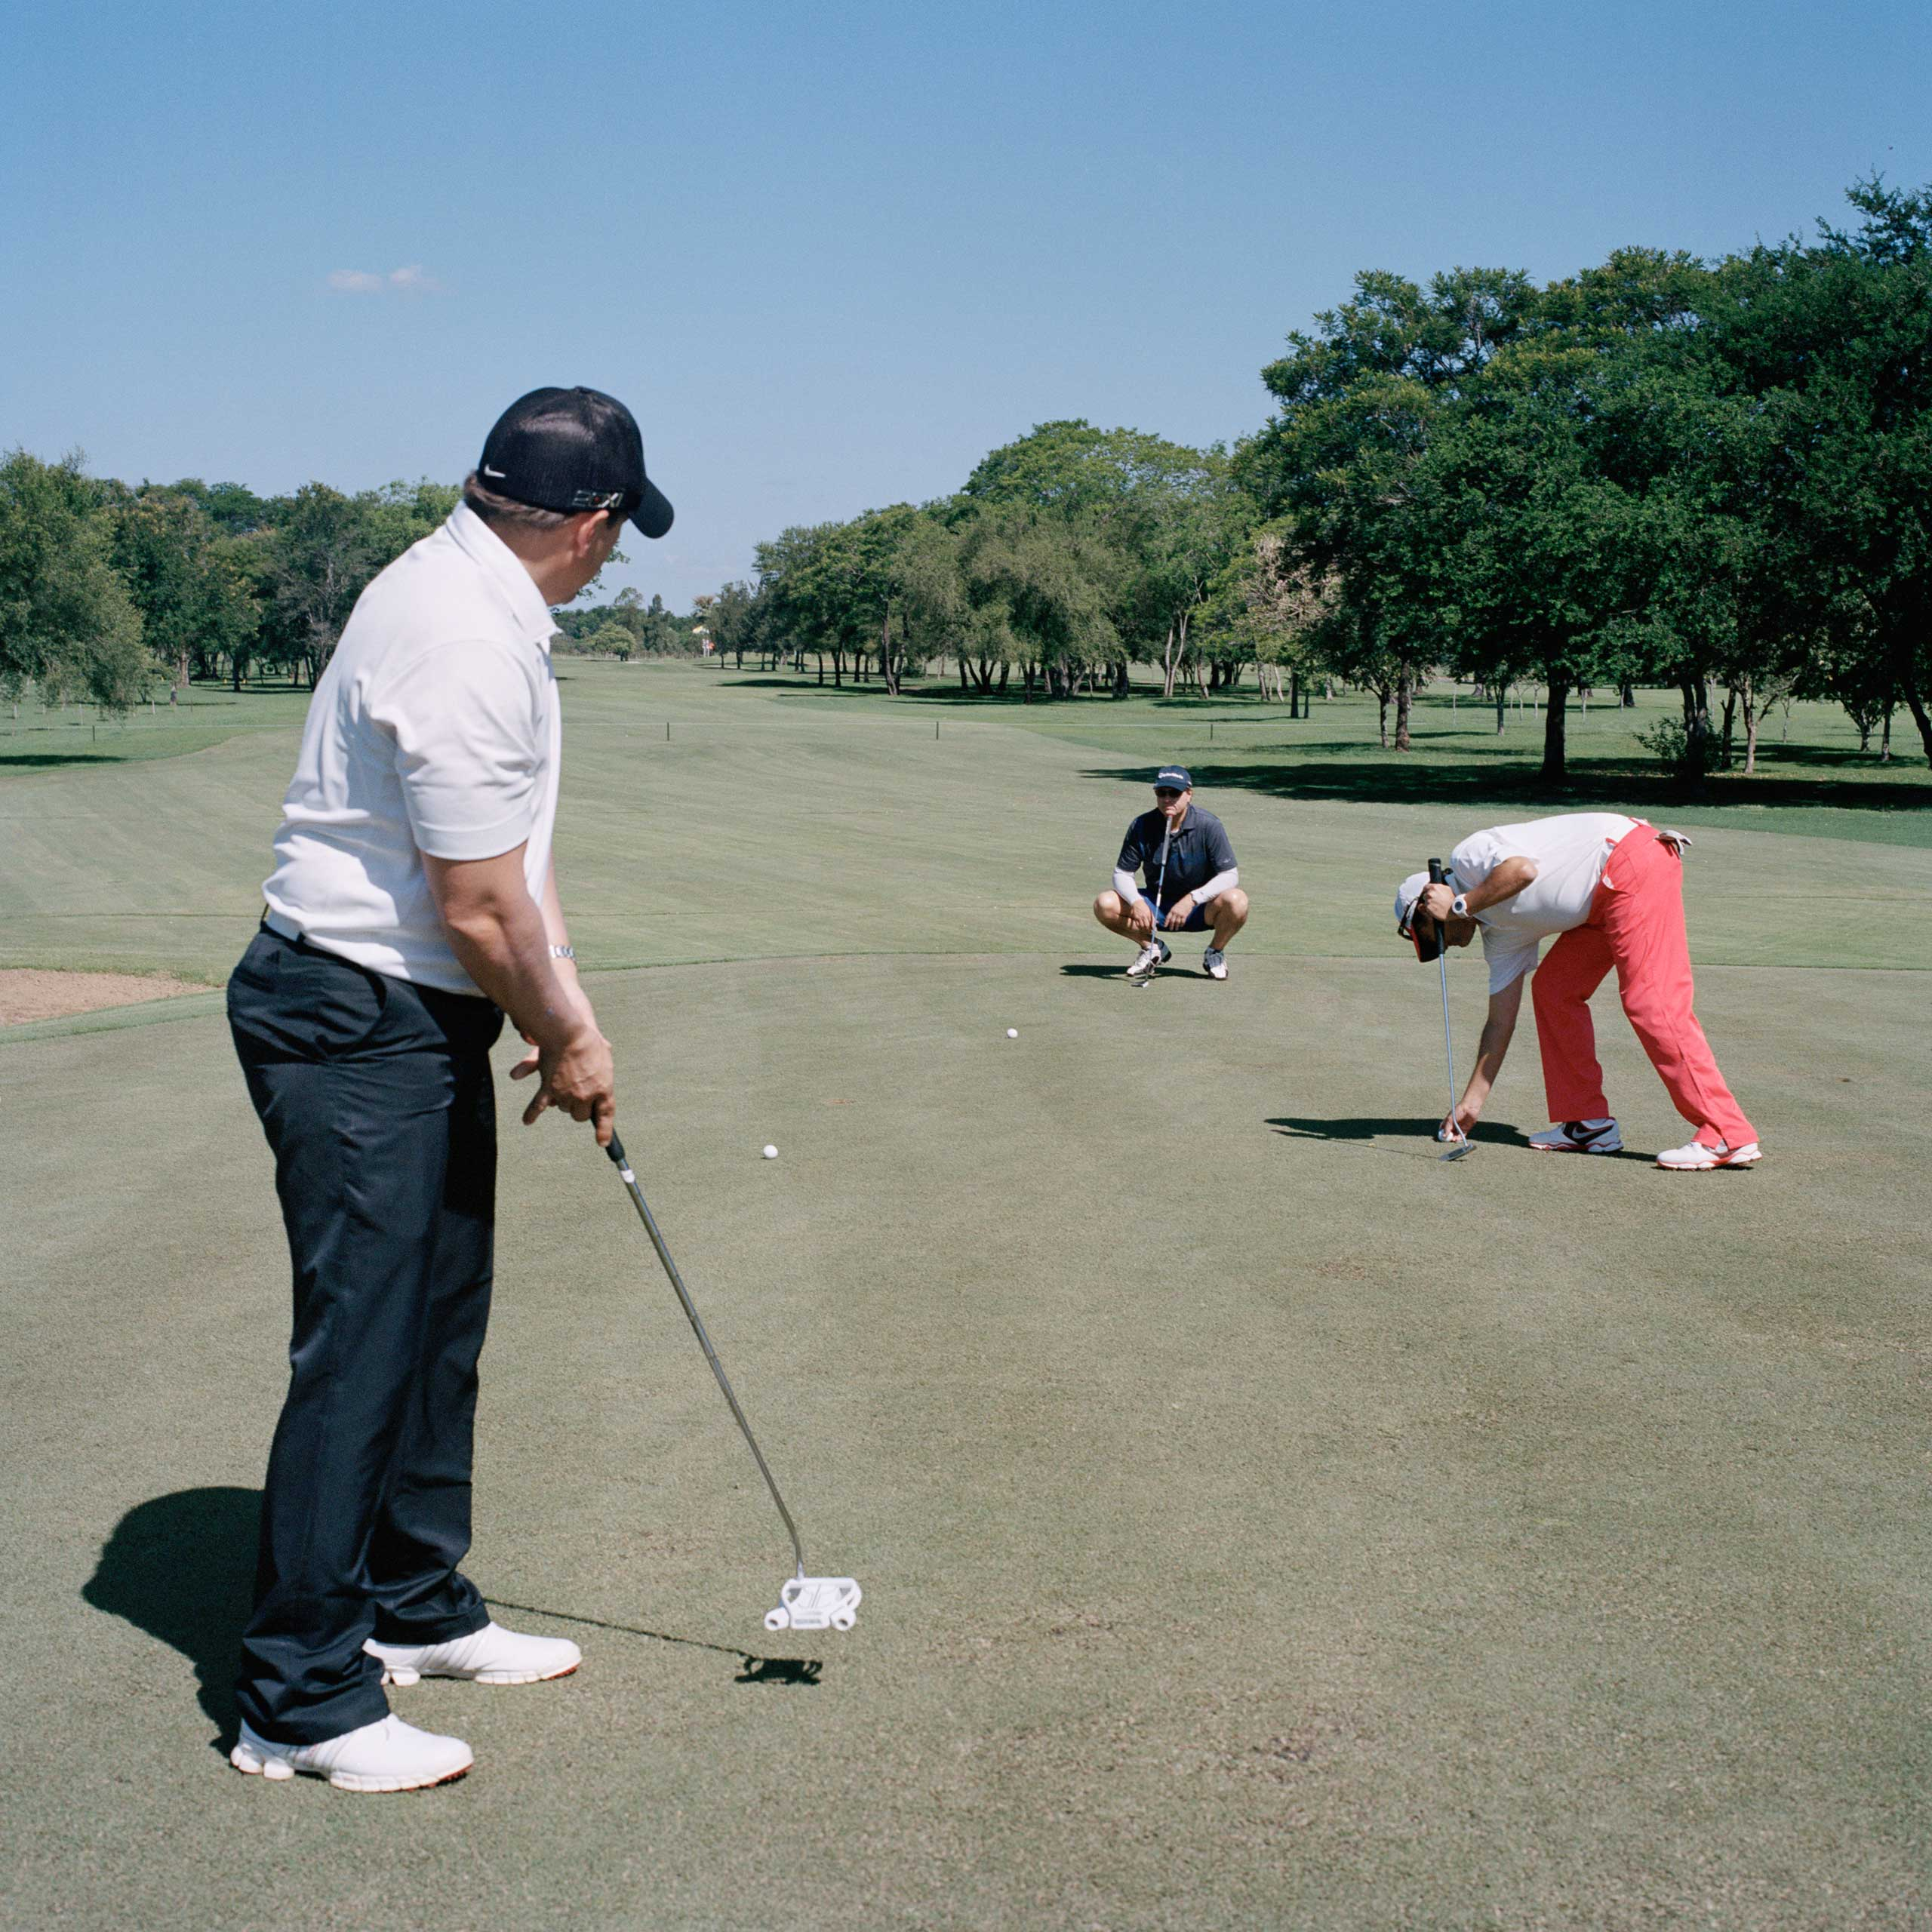 Members of the Club Centenario, the most exclusive club in Asunción, play golf during their weekly appointment. According to one of the workers, a vast majority of members are part of the country's agribusiness elite.